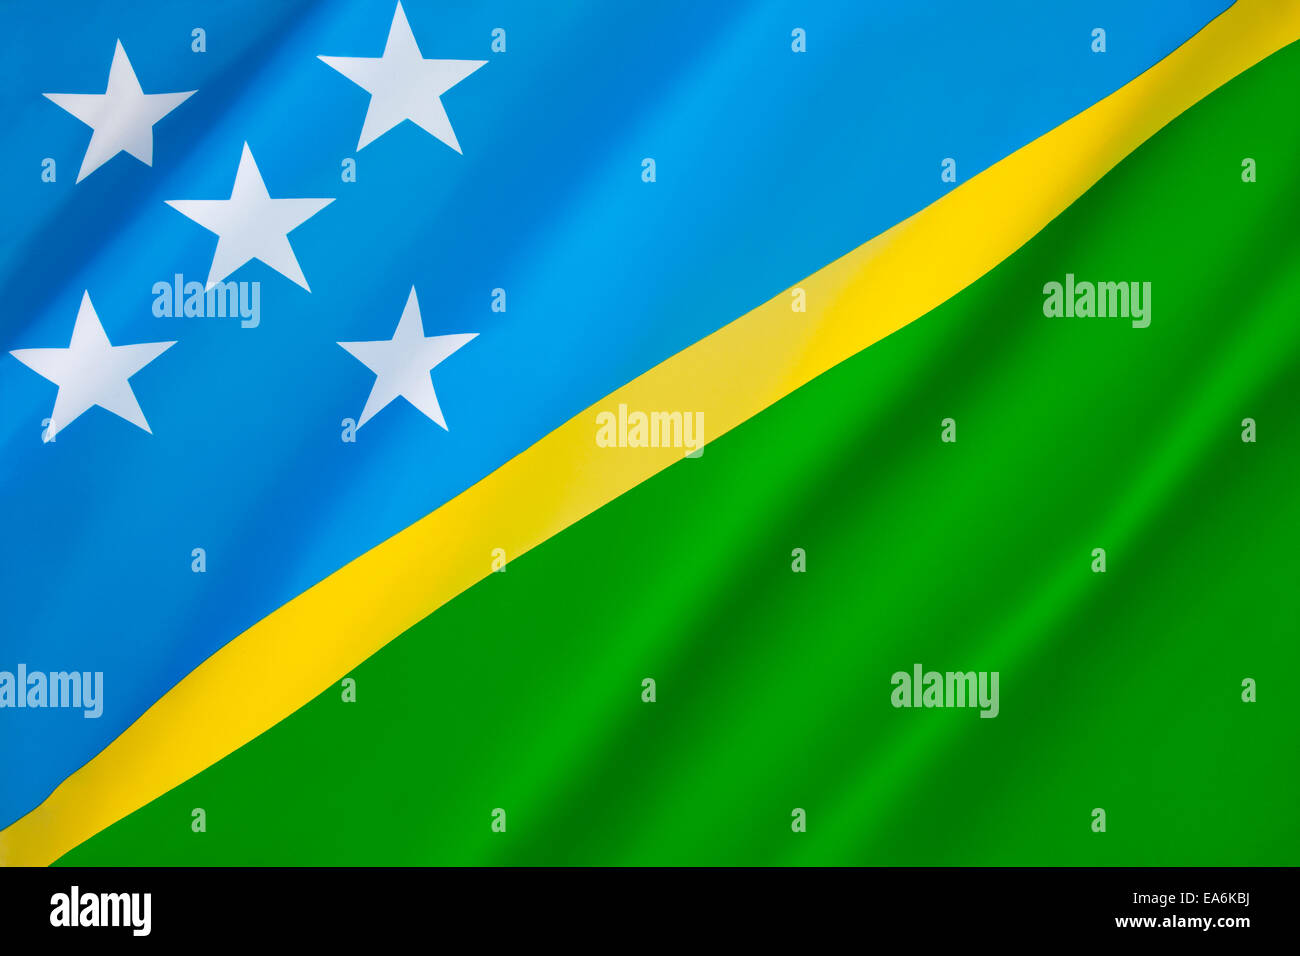 Flag of the Solomon Islands - Stock Image